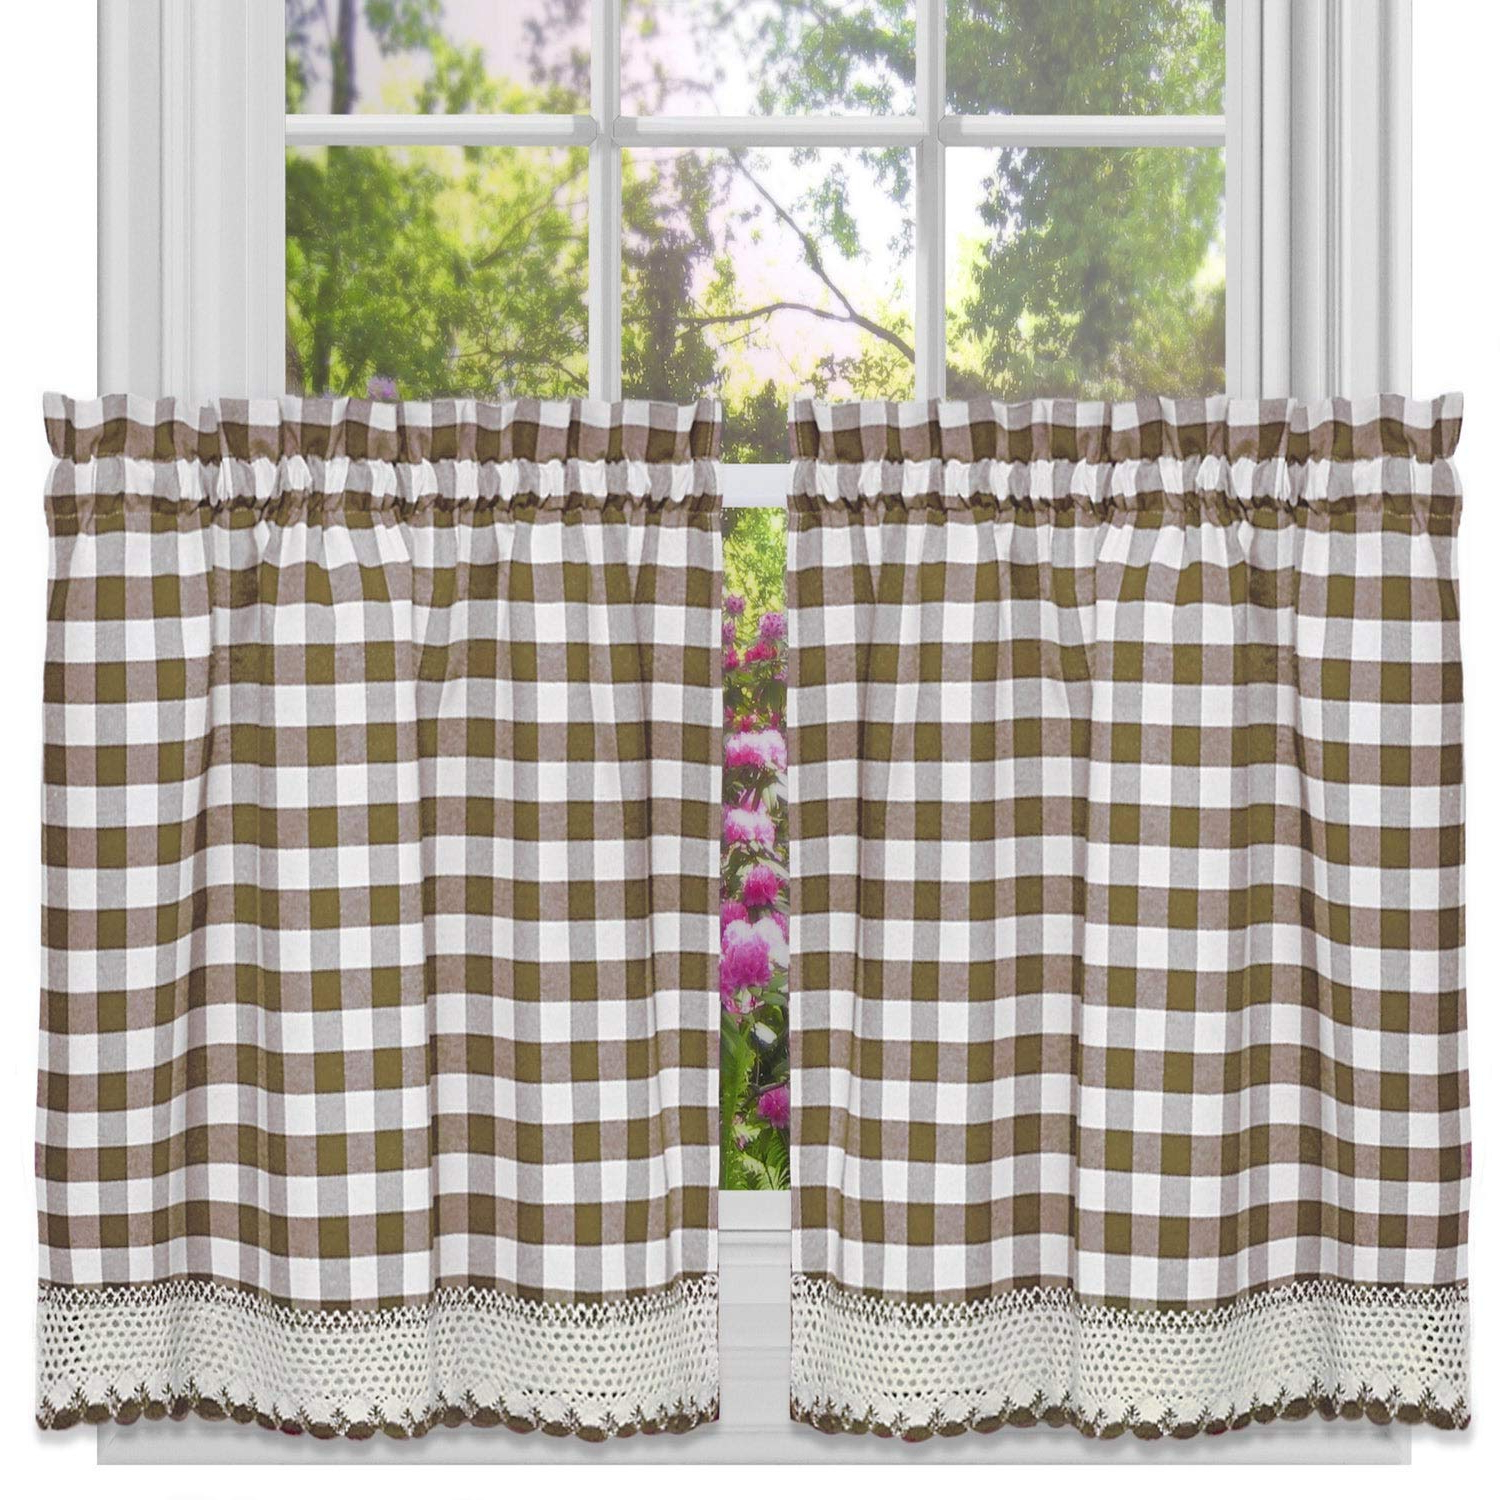 Amazon: Bed Bath N More Classic Buffalo Check Kitchen Intended For Most Up To Date Cotton Blend Classic Checkered Decorative Window Curtains (View 7 of 20)